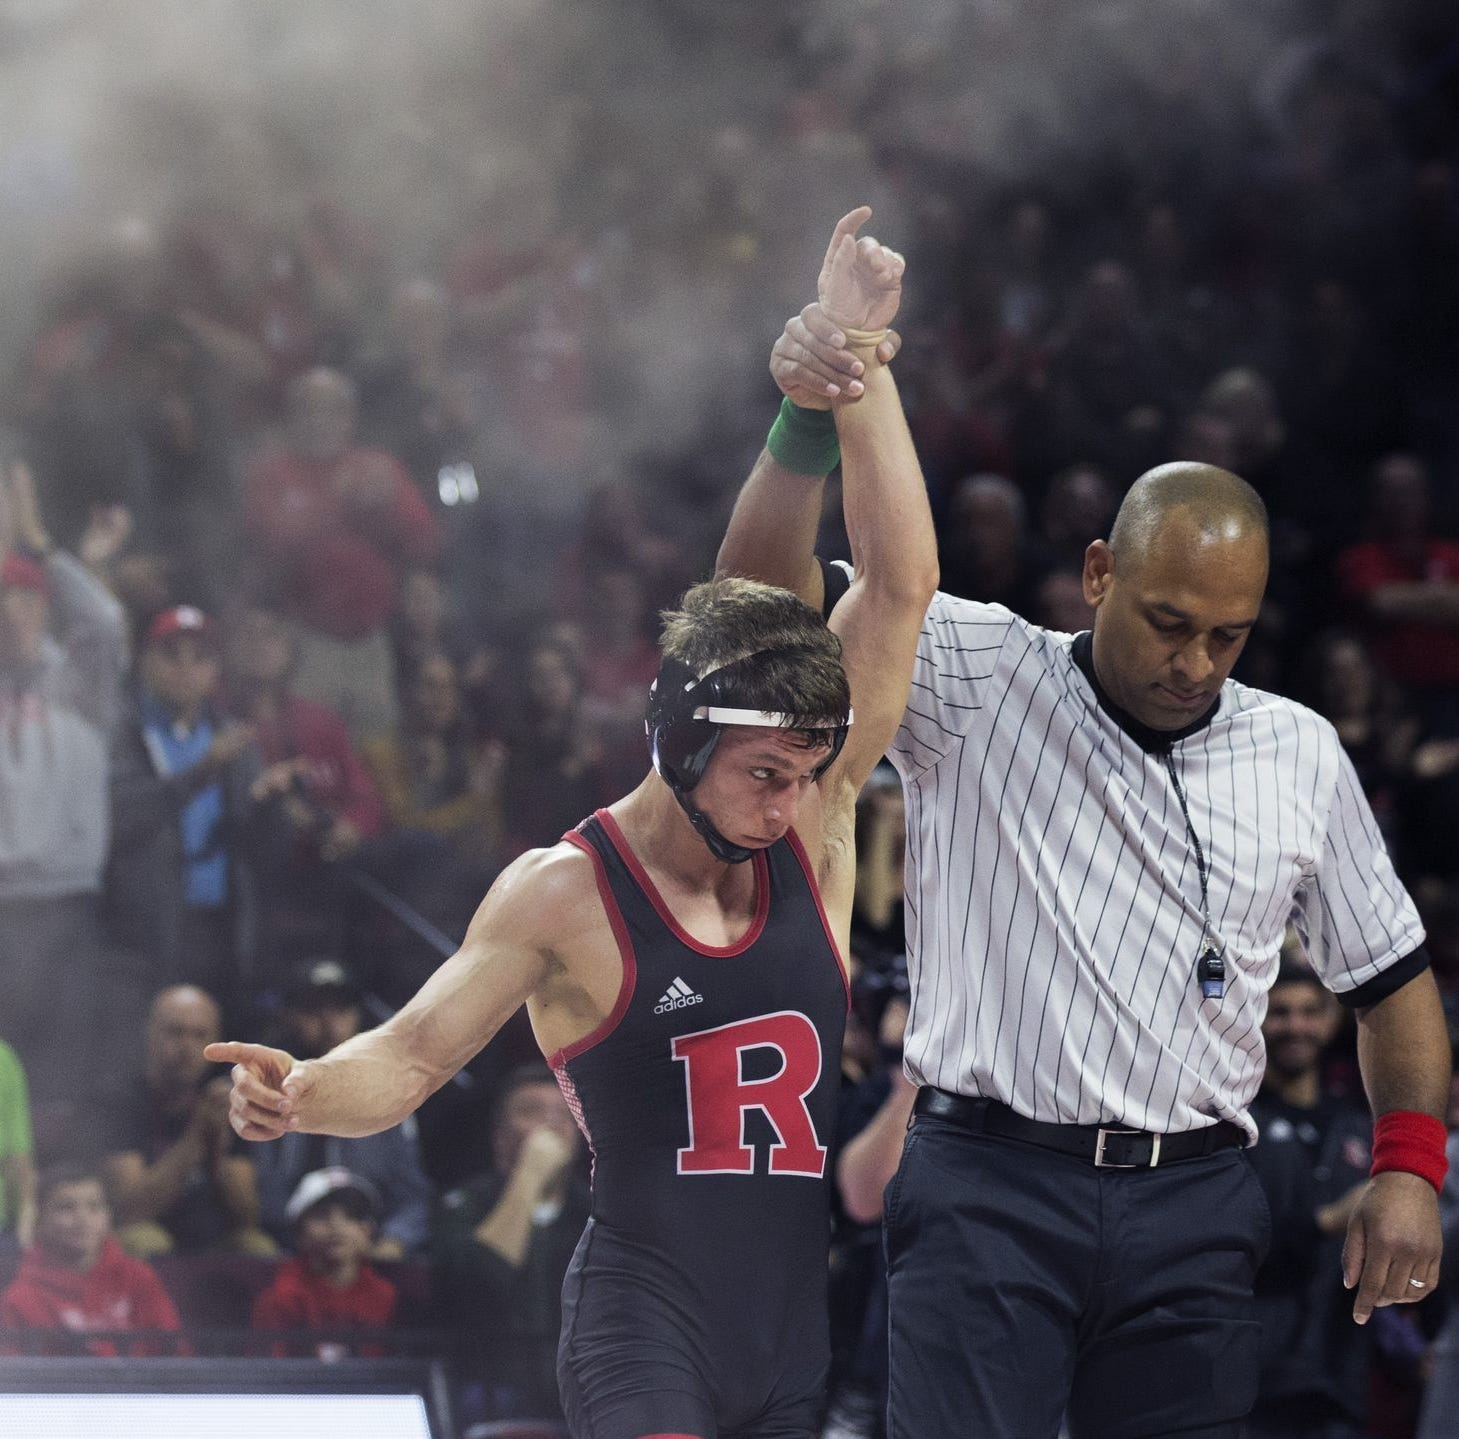 Rutgers wrestling: RU, Rider set to square off in rivalry renewed